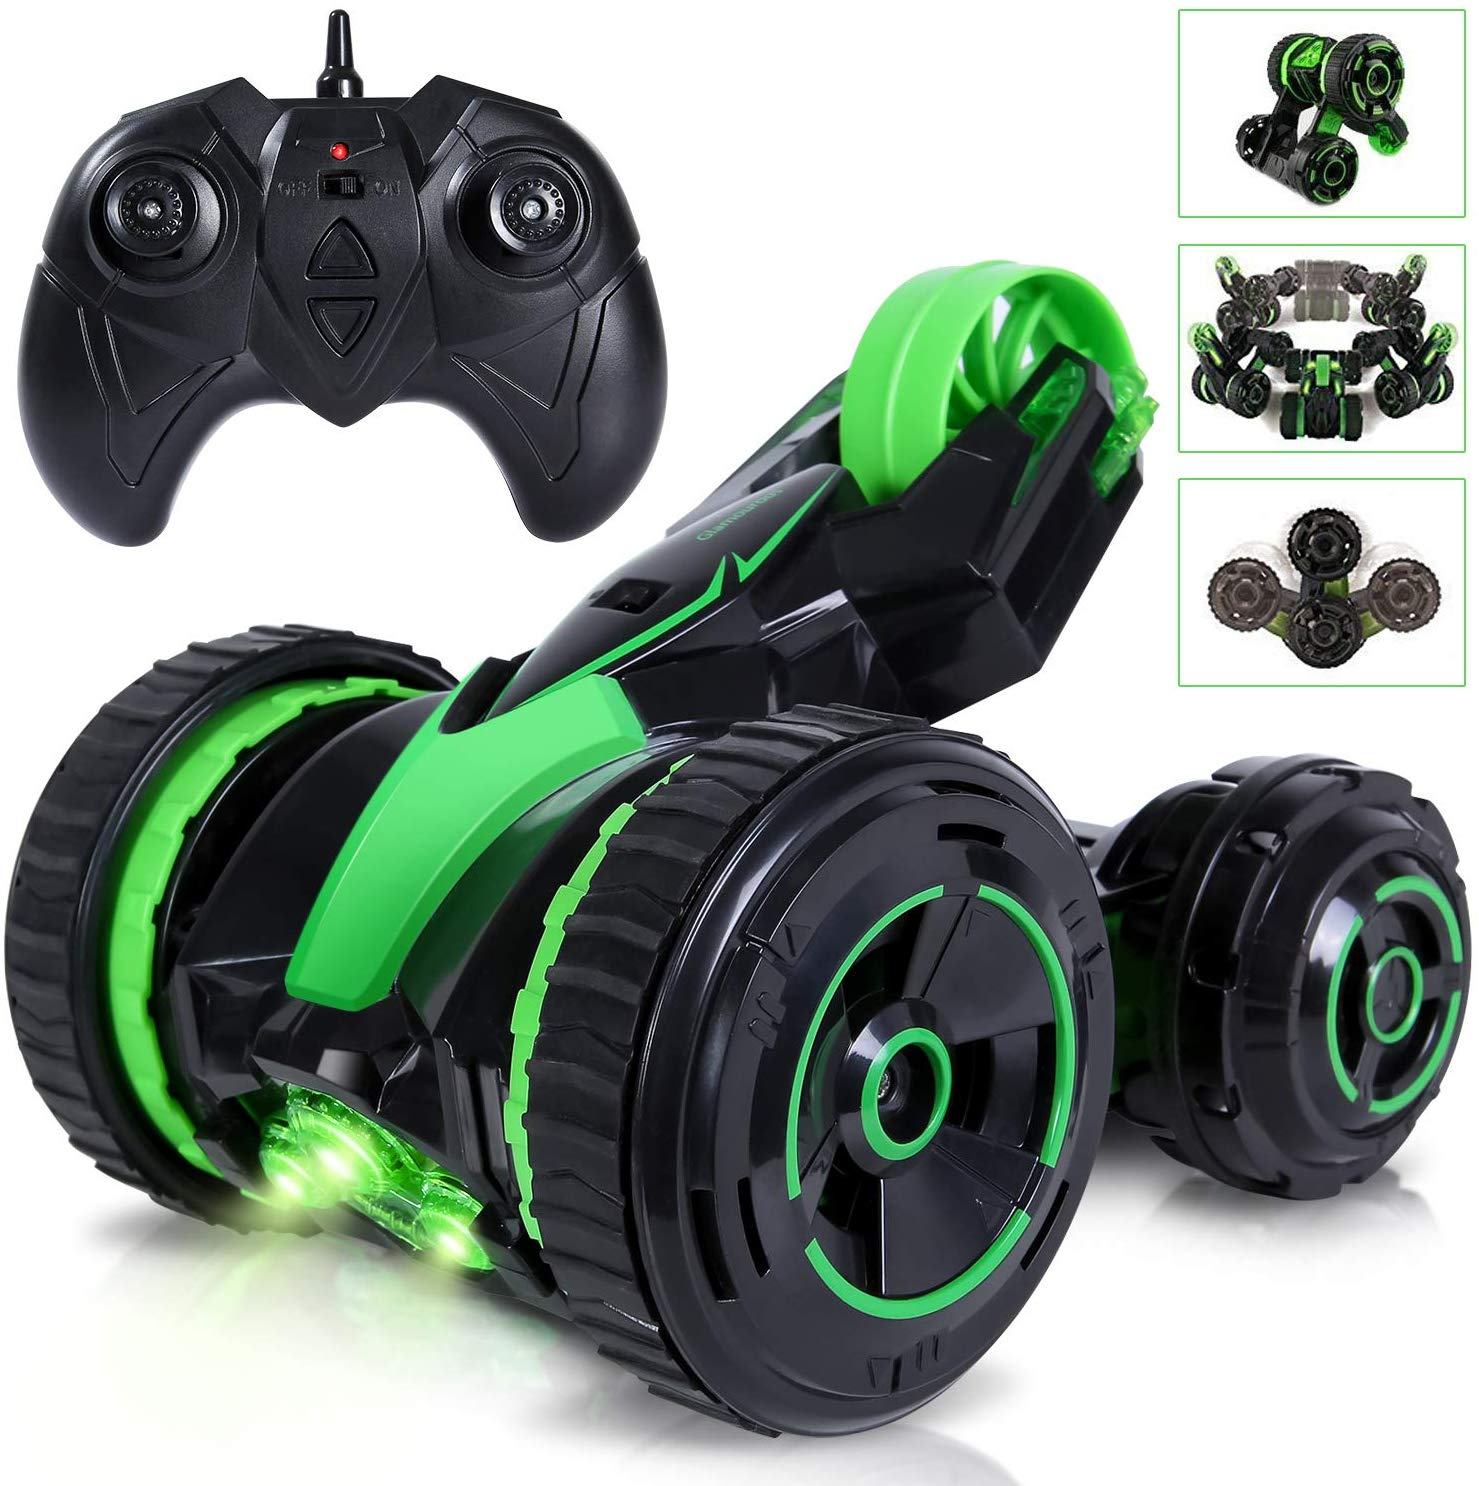 ANTAPRCIS Remote Control Car, 360° Rotating Stunt Vehicle, Gift for Kids and Adult